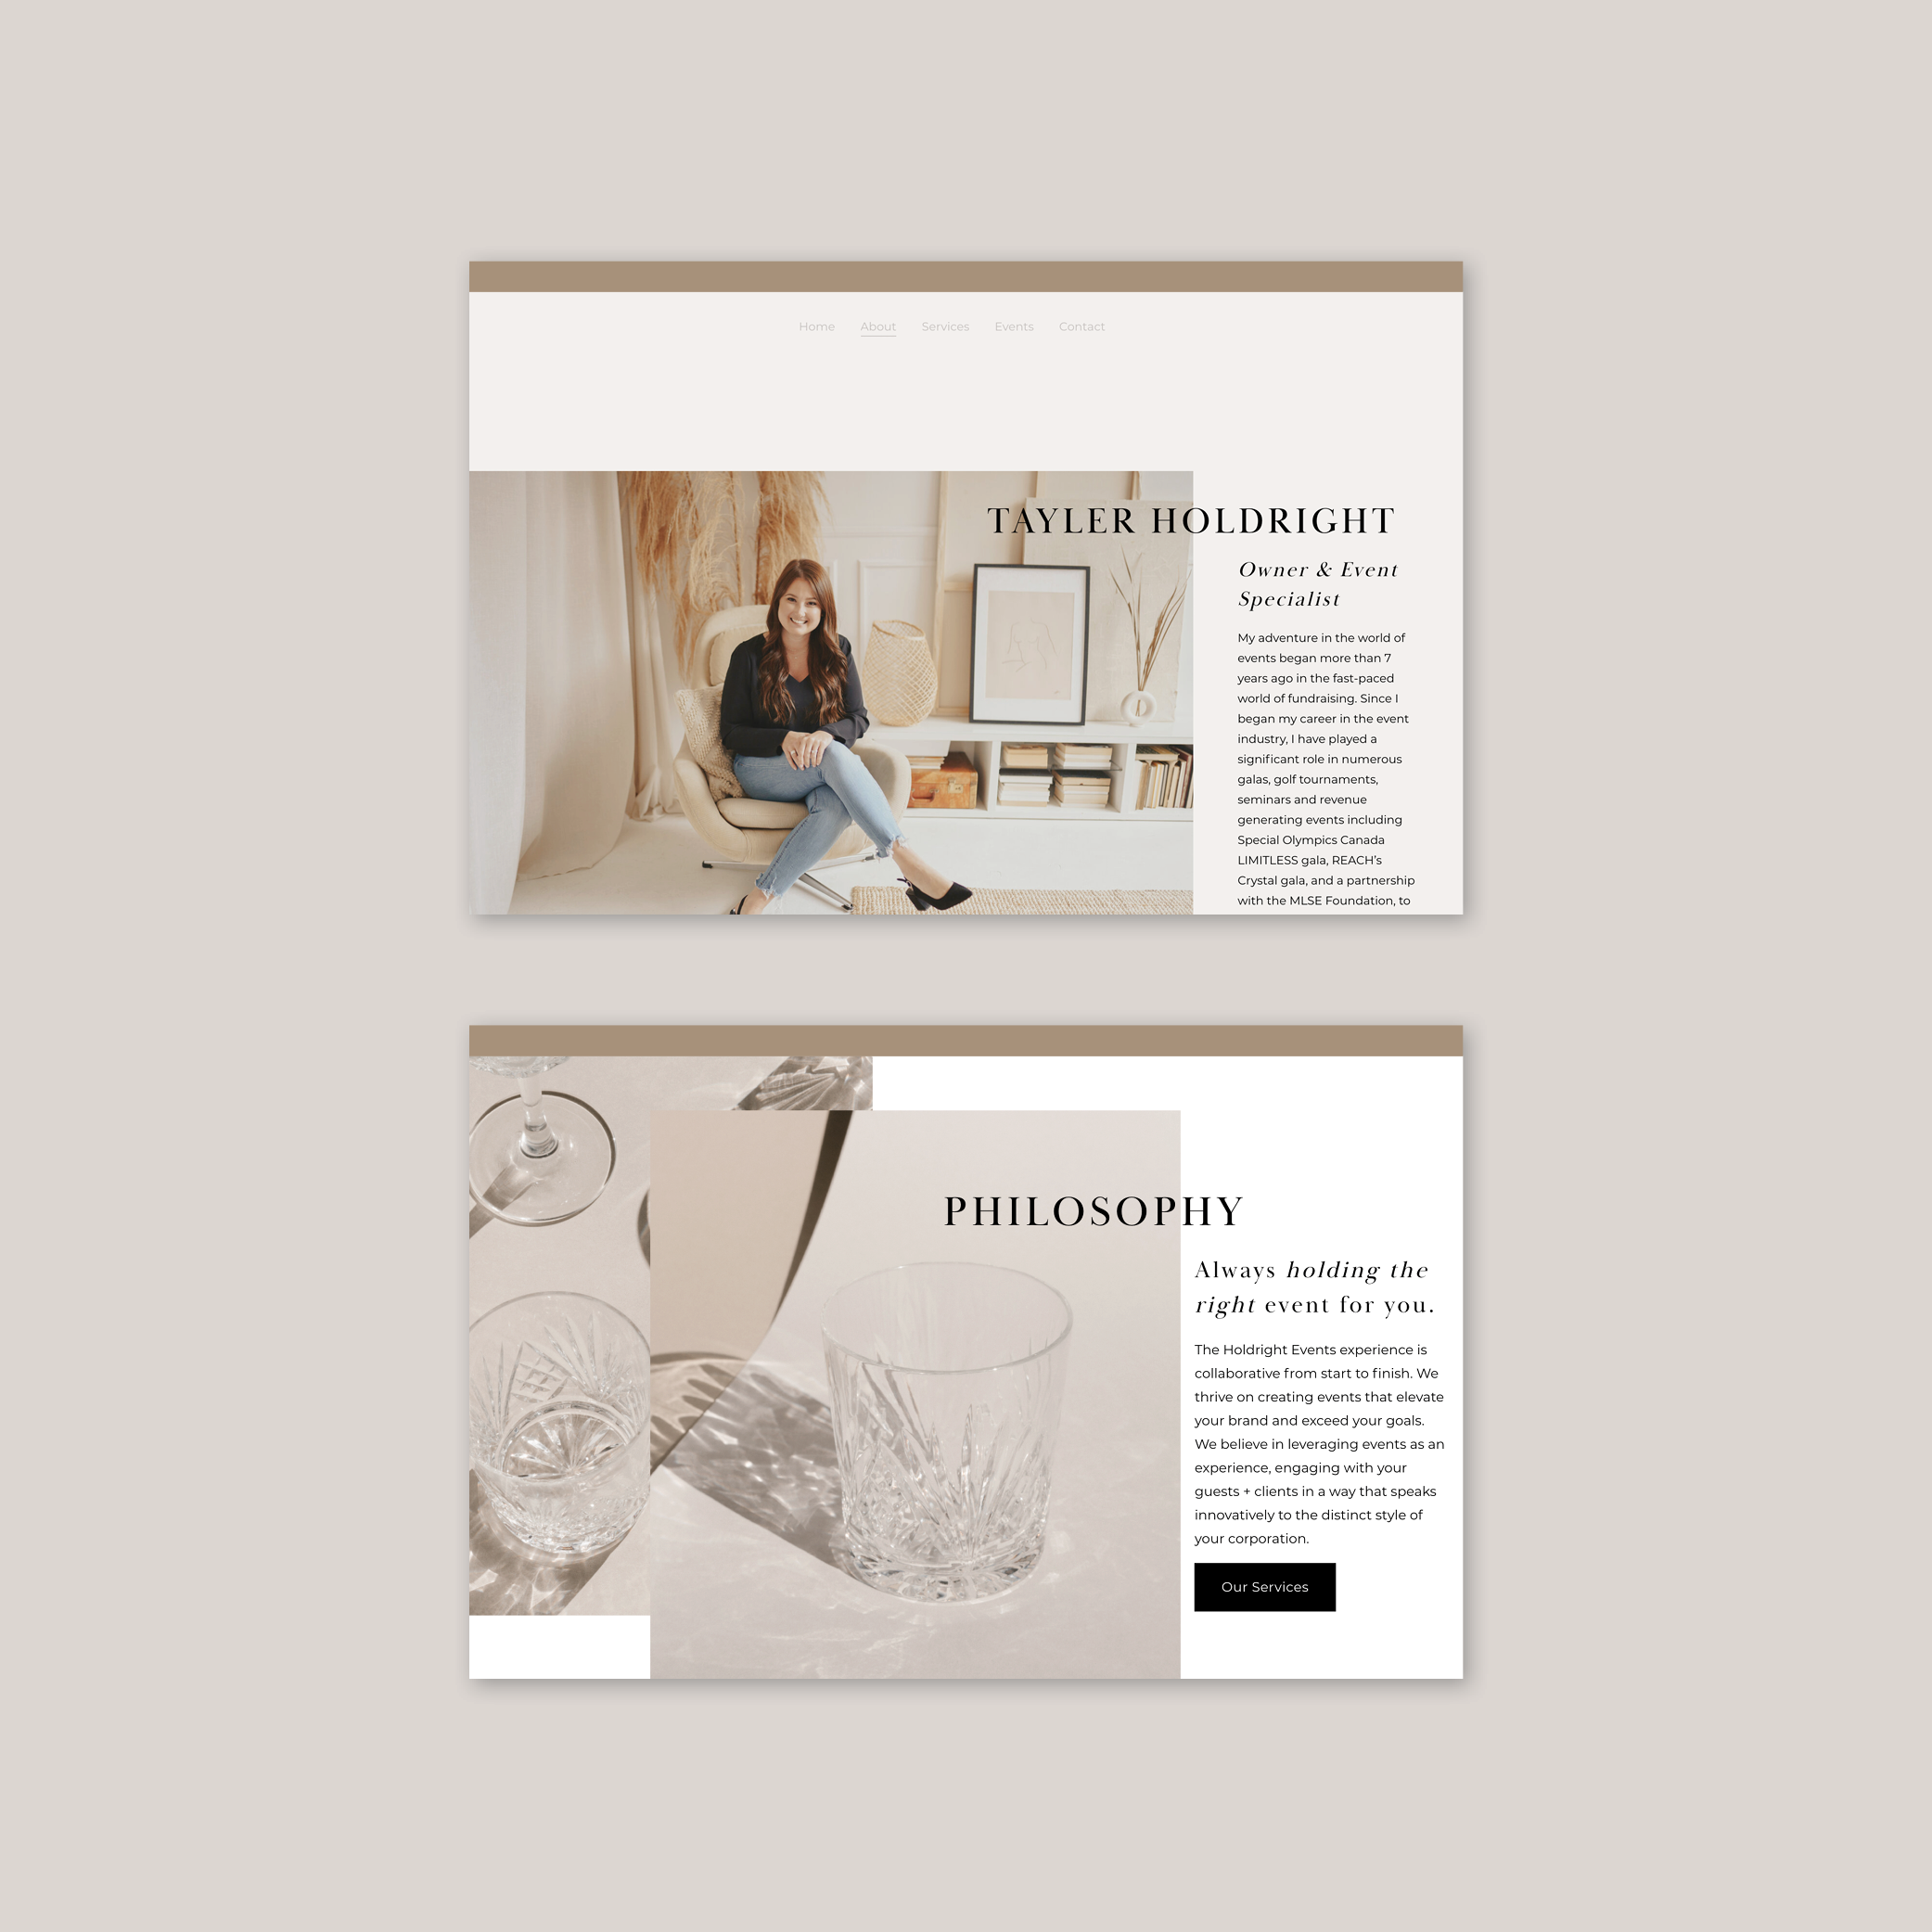 Web Design For Event Planners In 2020 Web Design Web Design Projects Event Planning Website